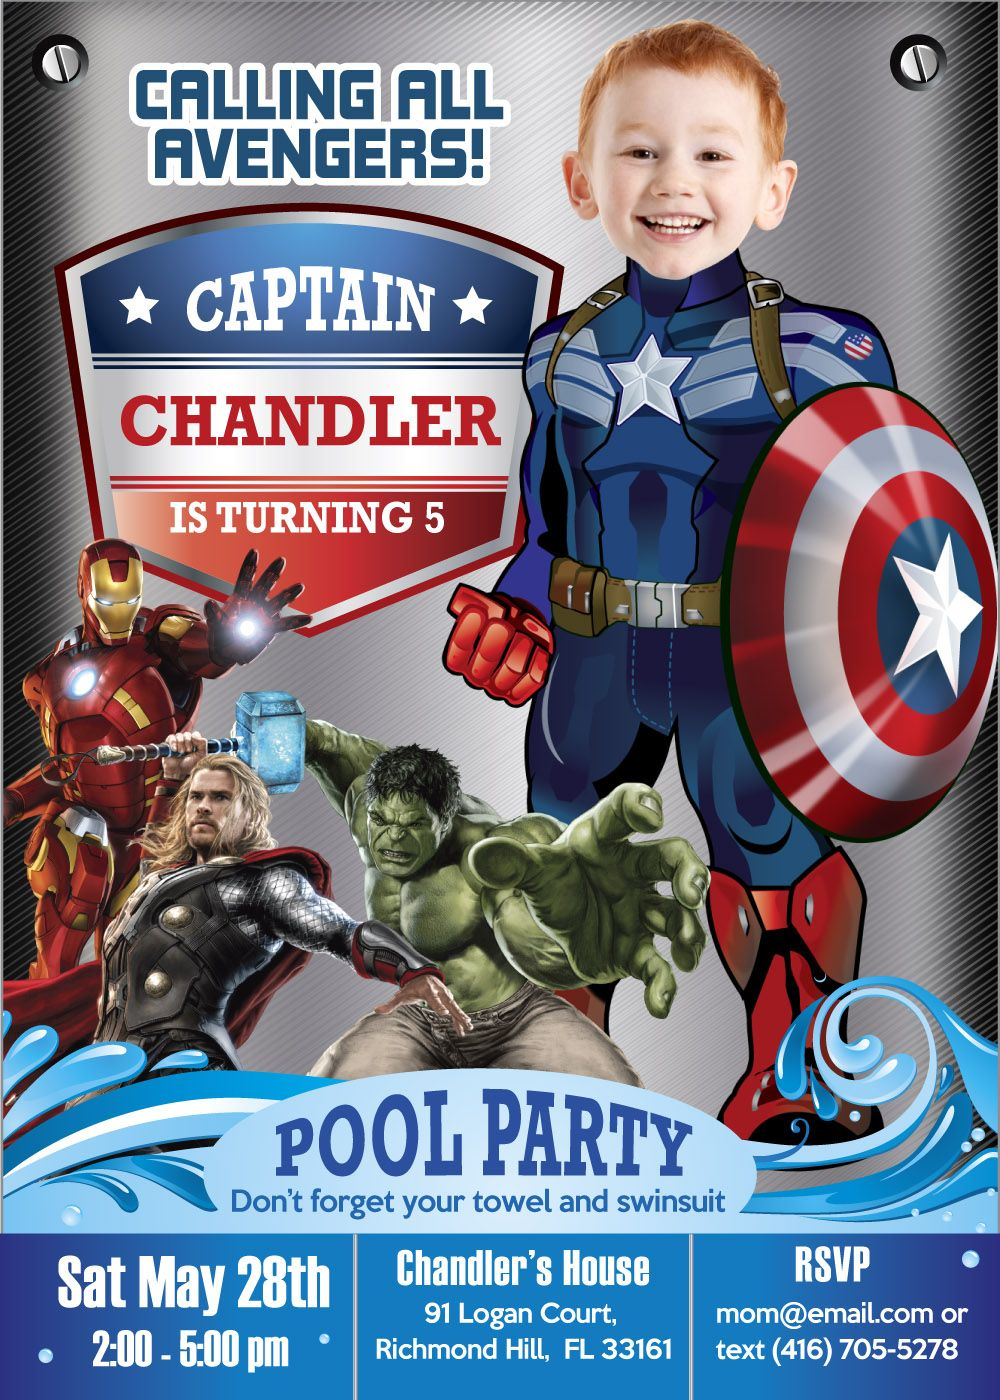 bday party invitation mail%0A Pool Party Captain America Birthday Invitation  Captain America Pool Party  invitations  Avenger pool party